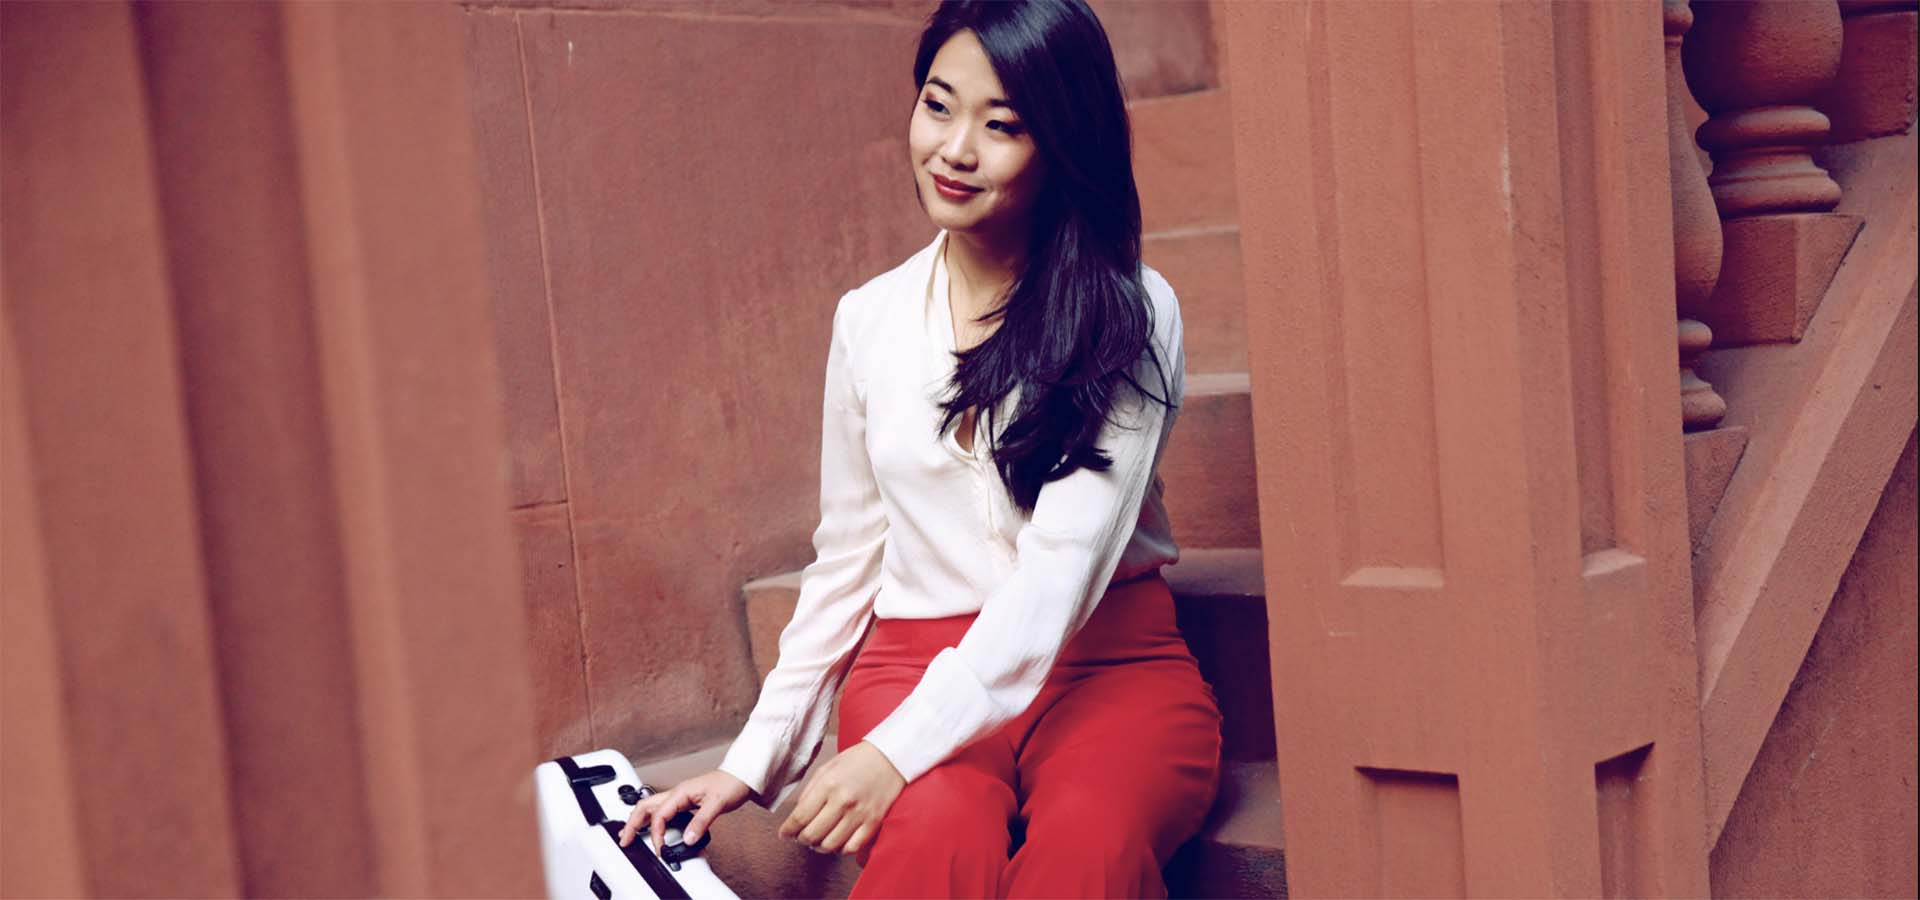 Asian-American woman with white shirt and red pants holding a violin case